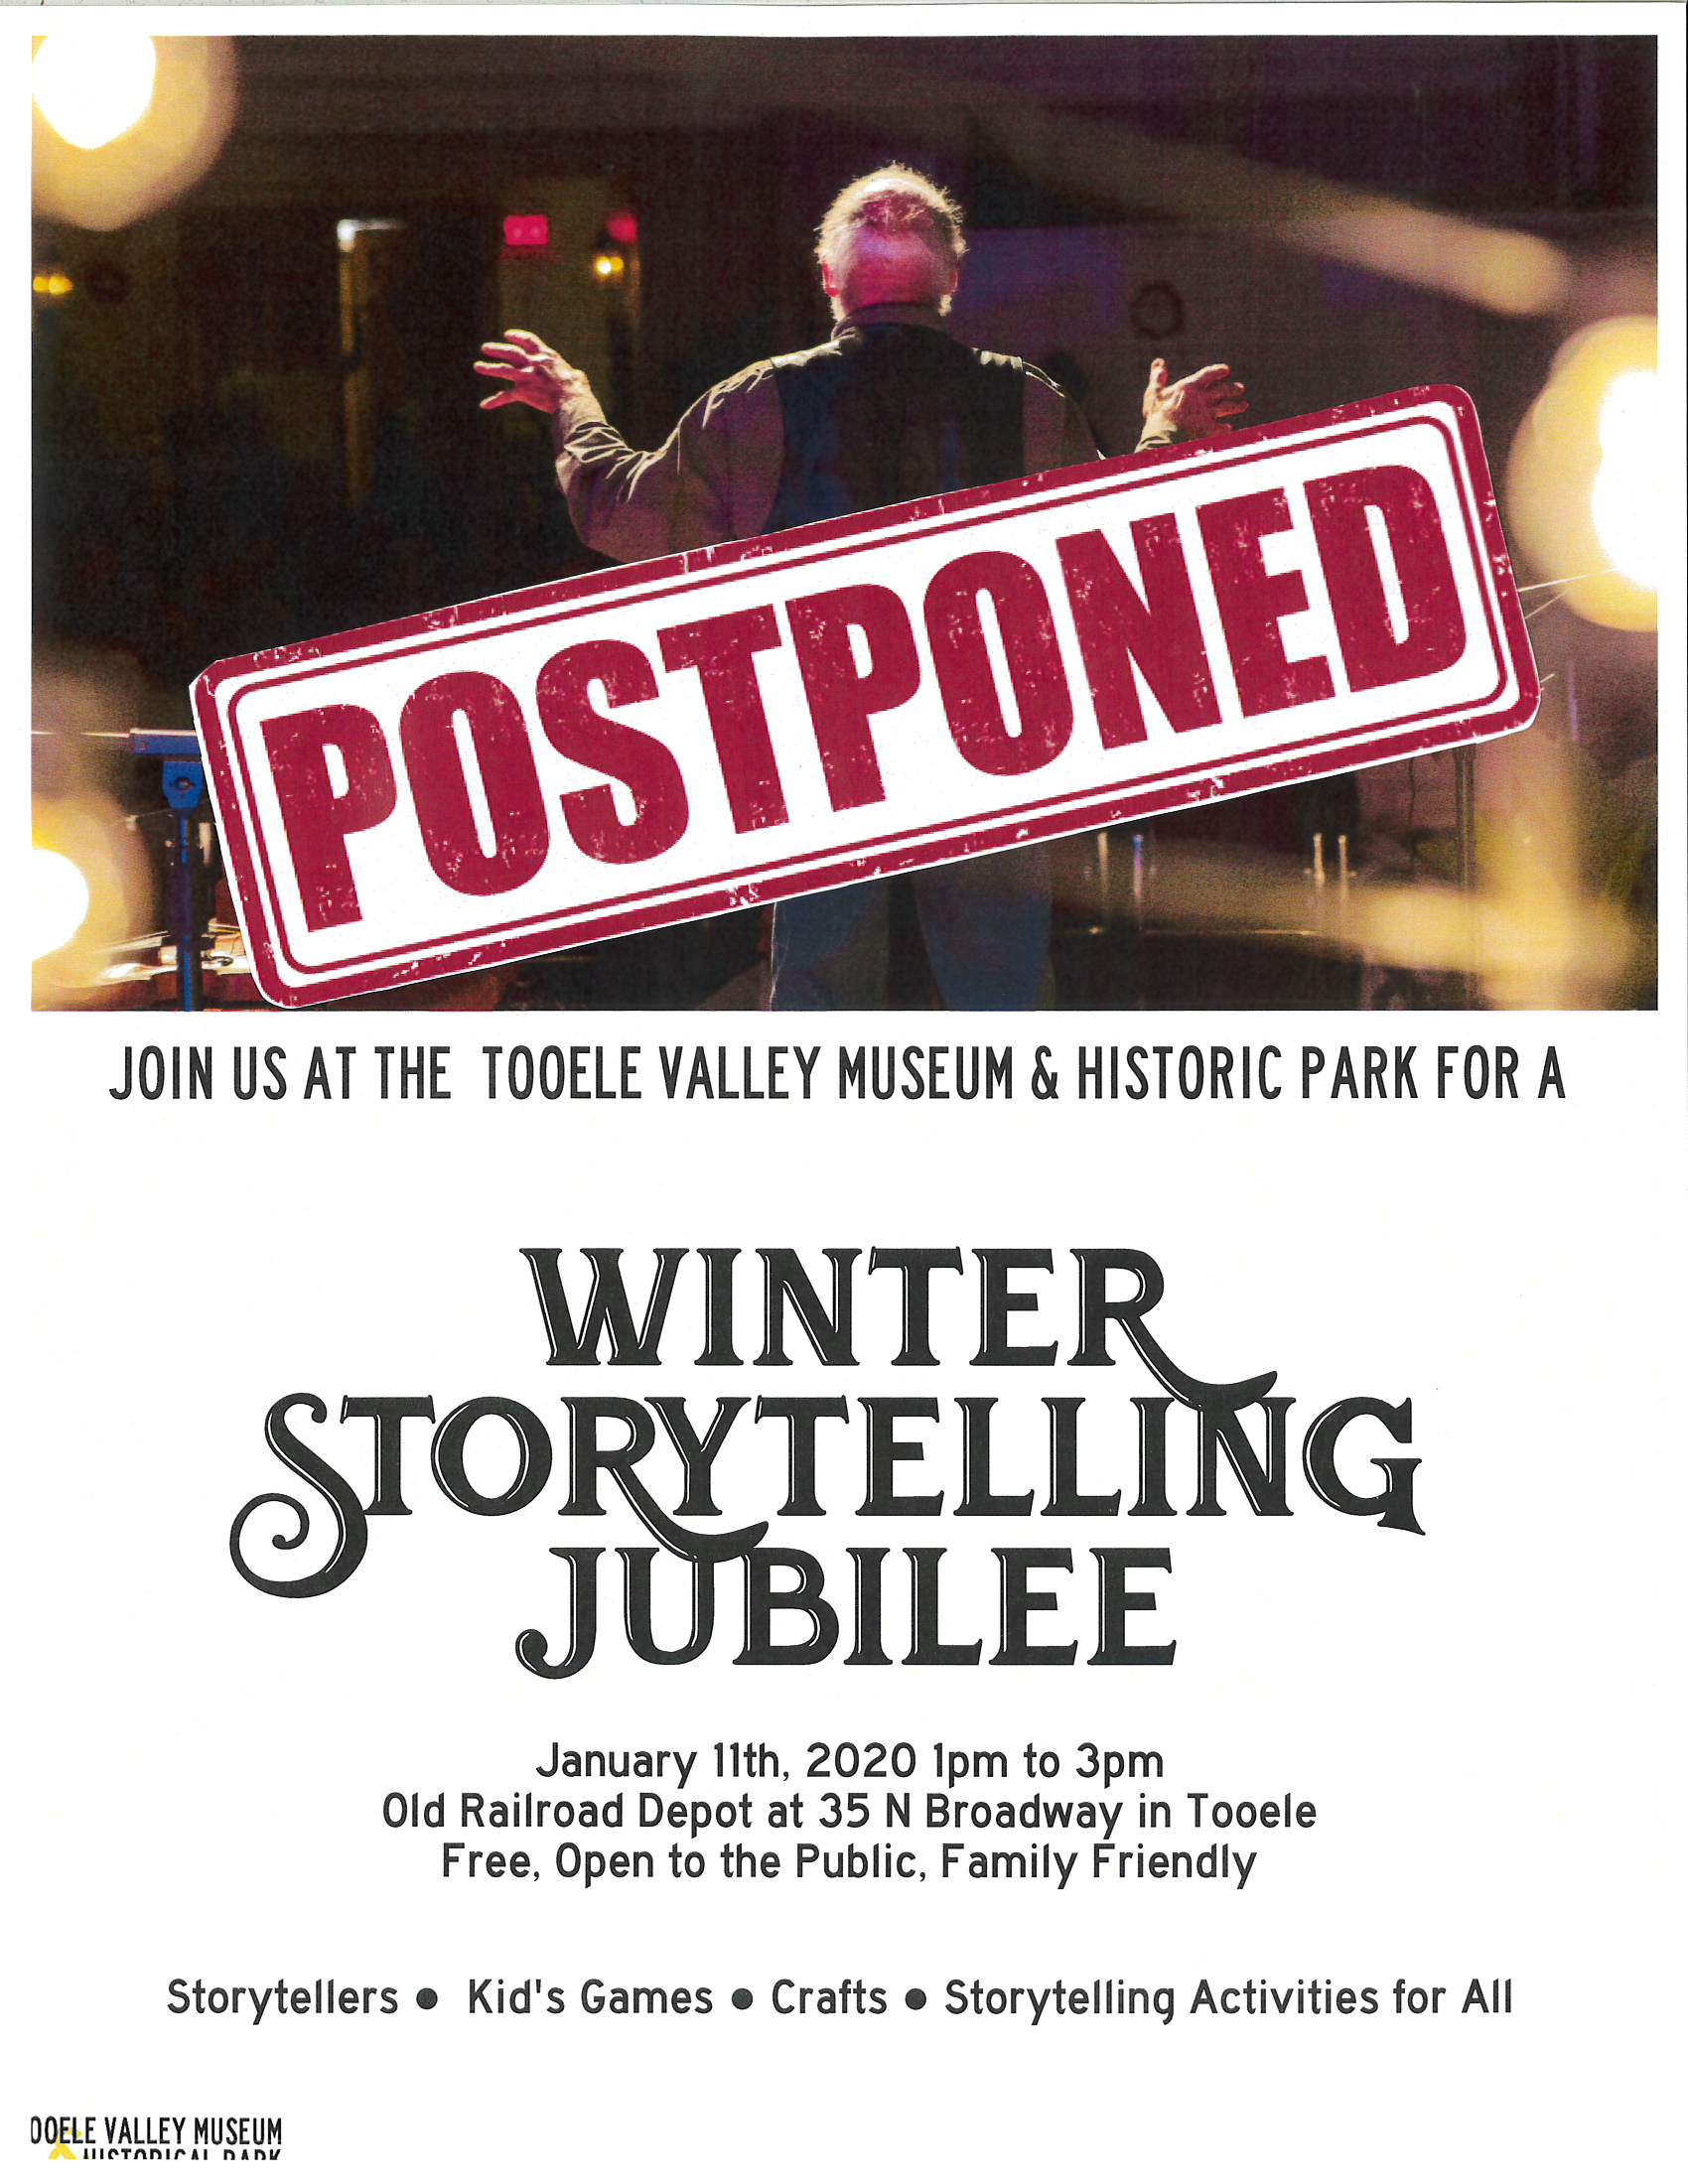 Winter Storytelling Jubilee - Postponed January 2020